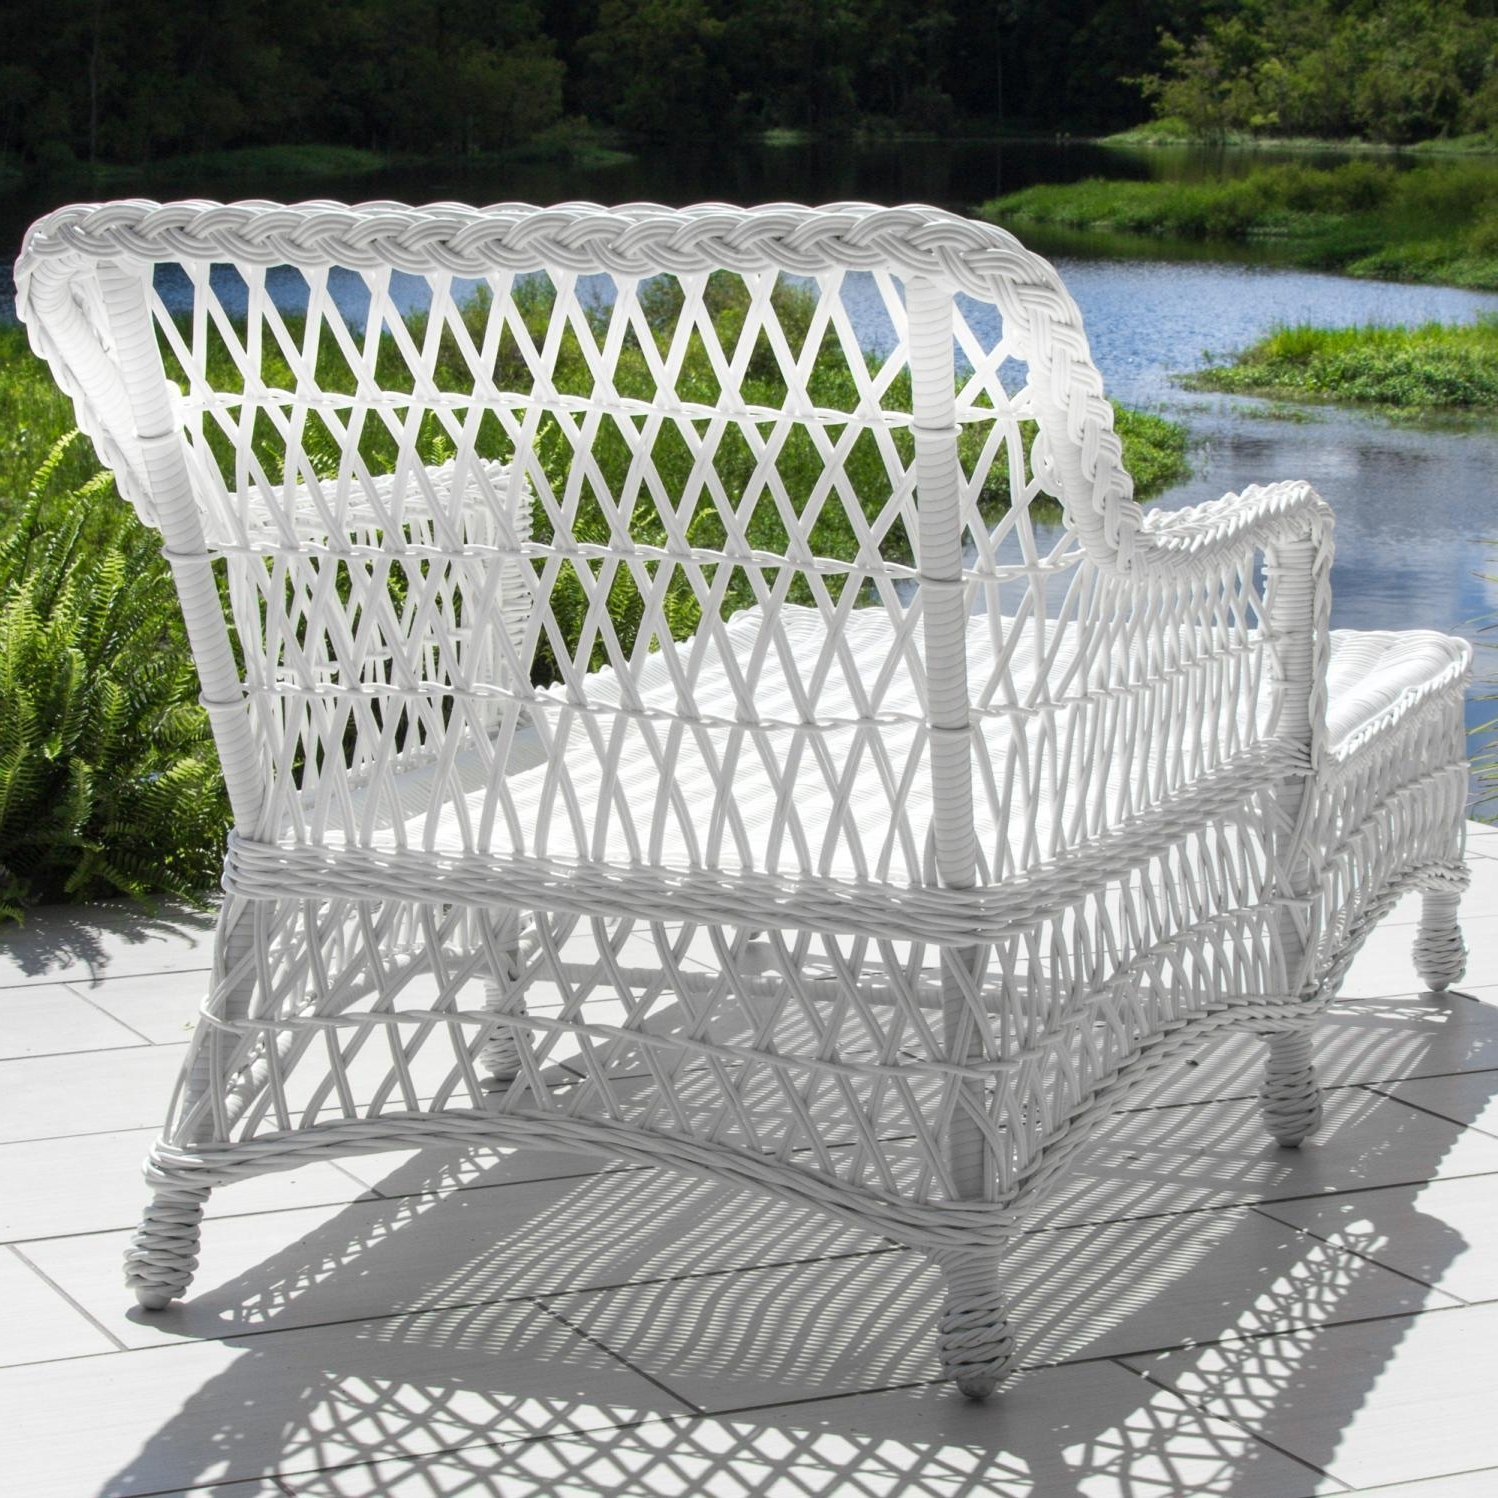 Everglades White Resin Wicker Patio Chaise Loungelakeview For Most Up To Date White Wicker Chaise Lounges (View 1 of 15)